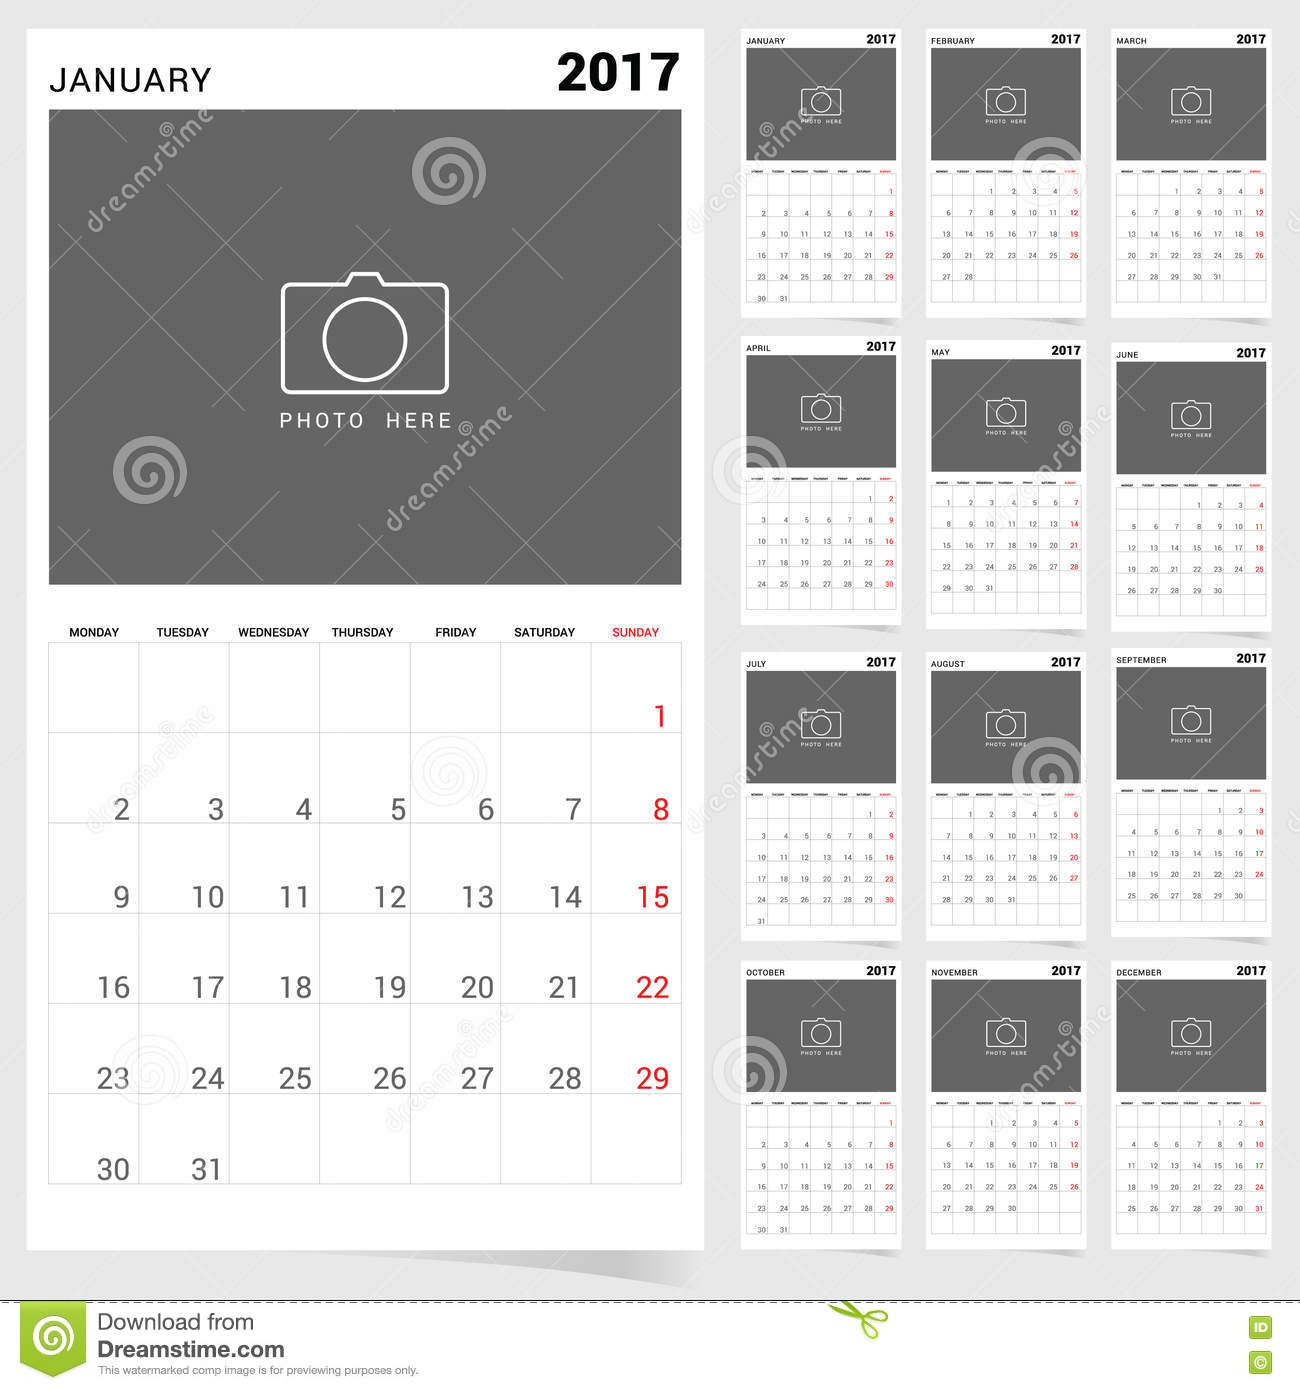 Planner calendar january 2017 design illustration stock for Time design planner